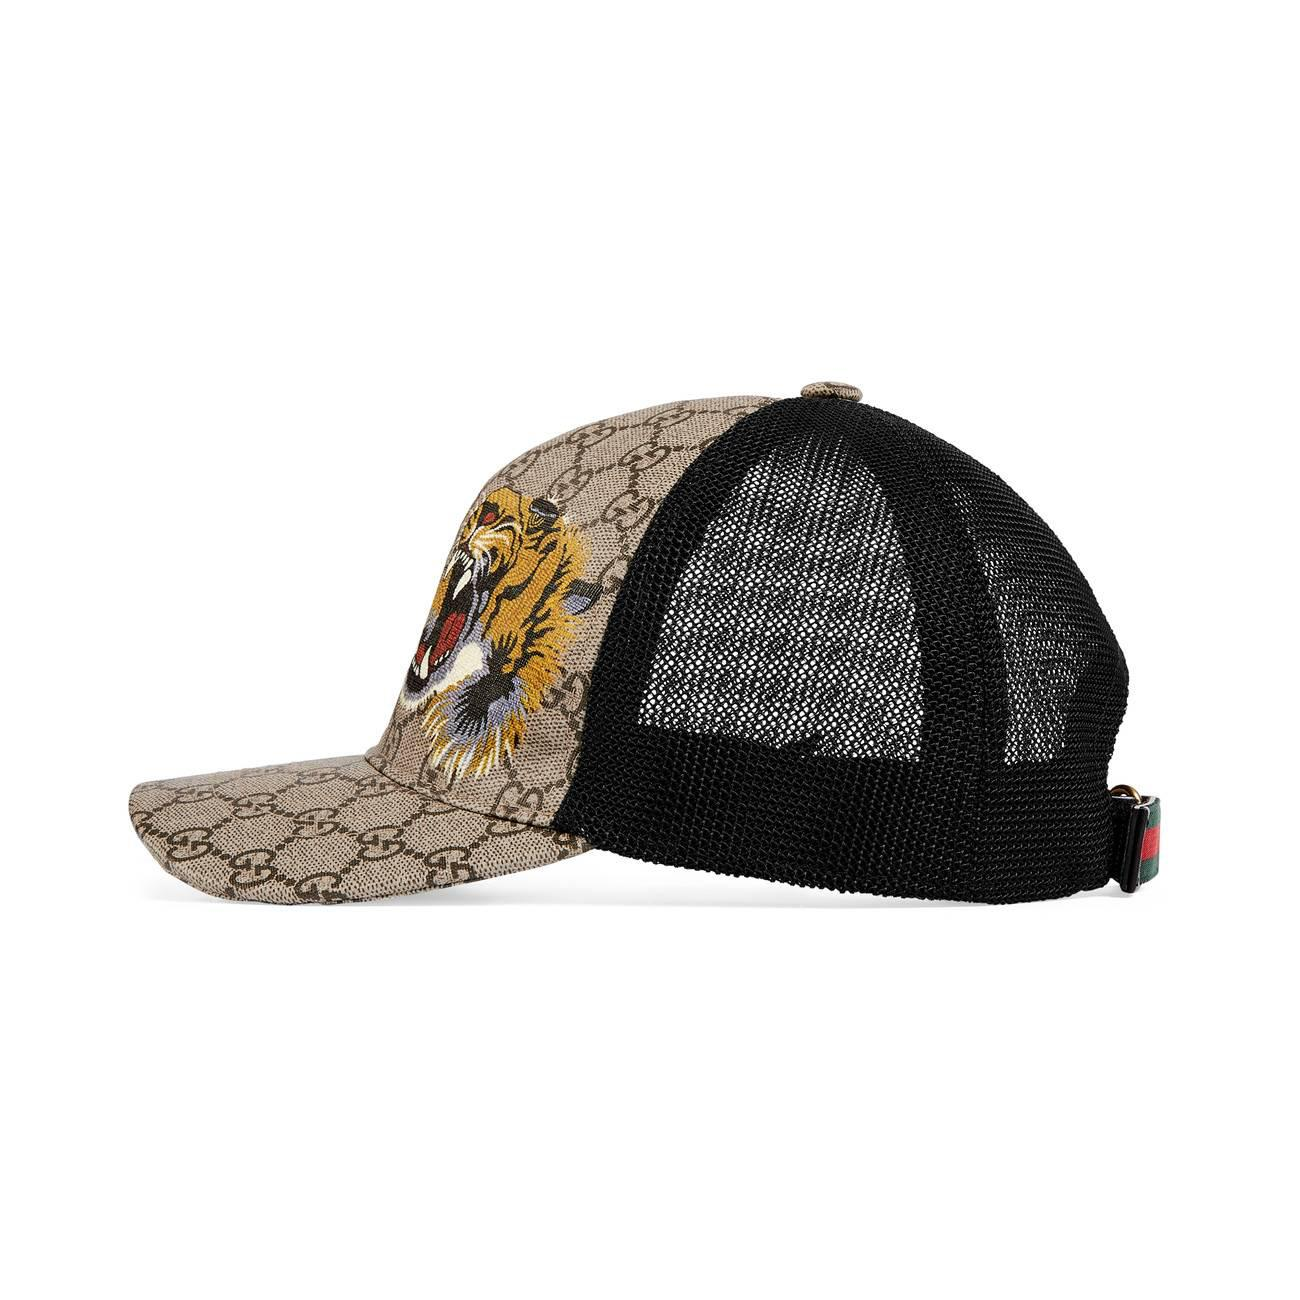 9af36bdec27 Gucci - Multicolor Tigers Print GG Supreme Baseball Hat for Men - Lyst.  View fullscreen